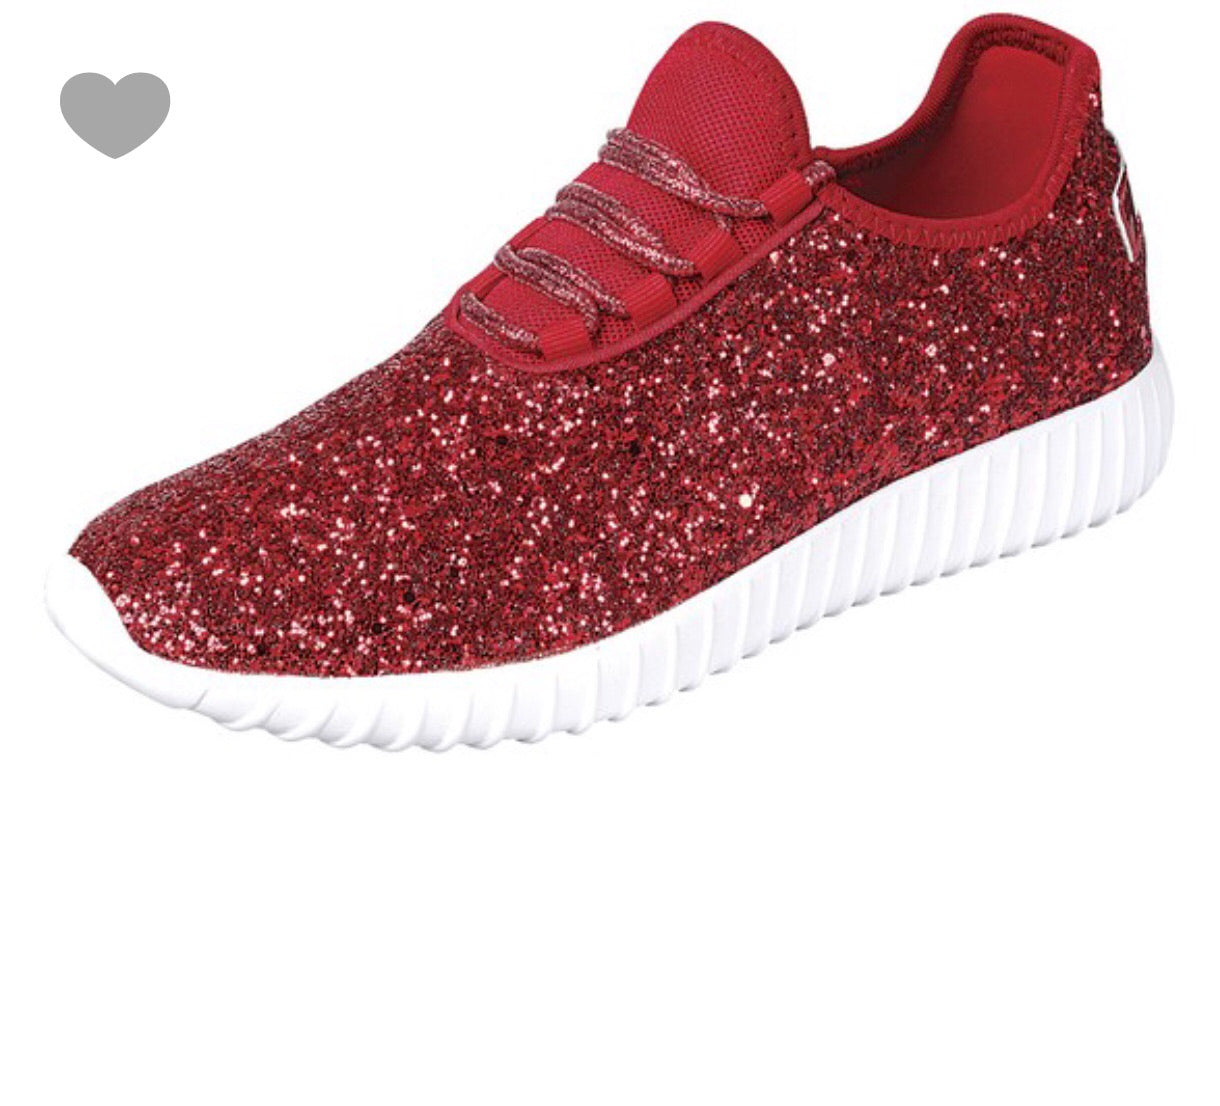 sneakers outlet store great fit Red sparkly shoes